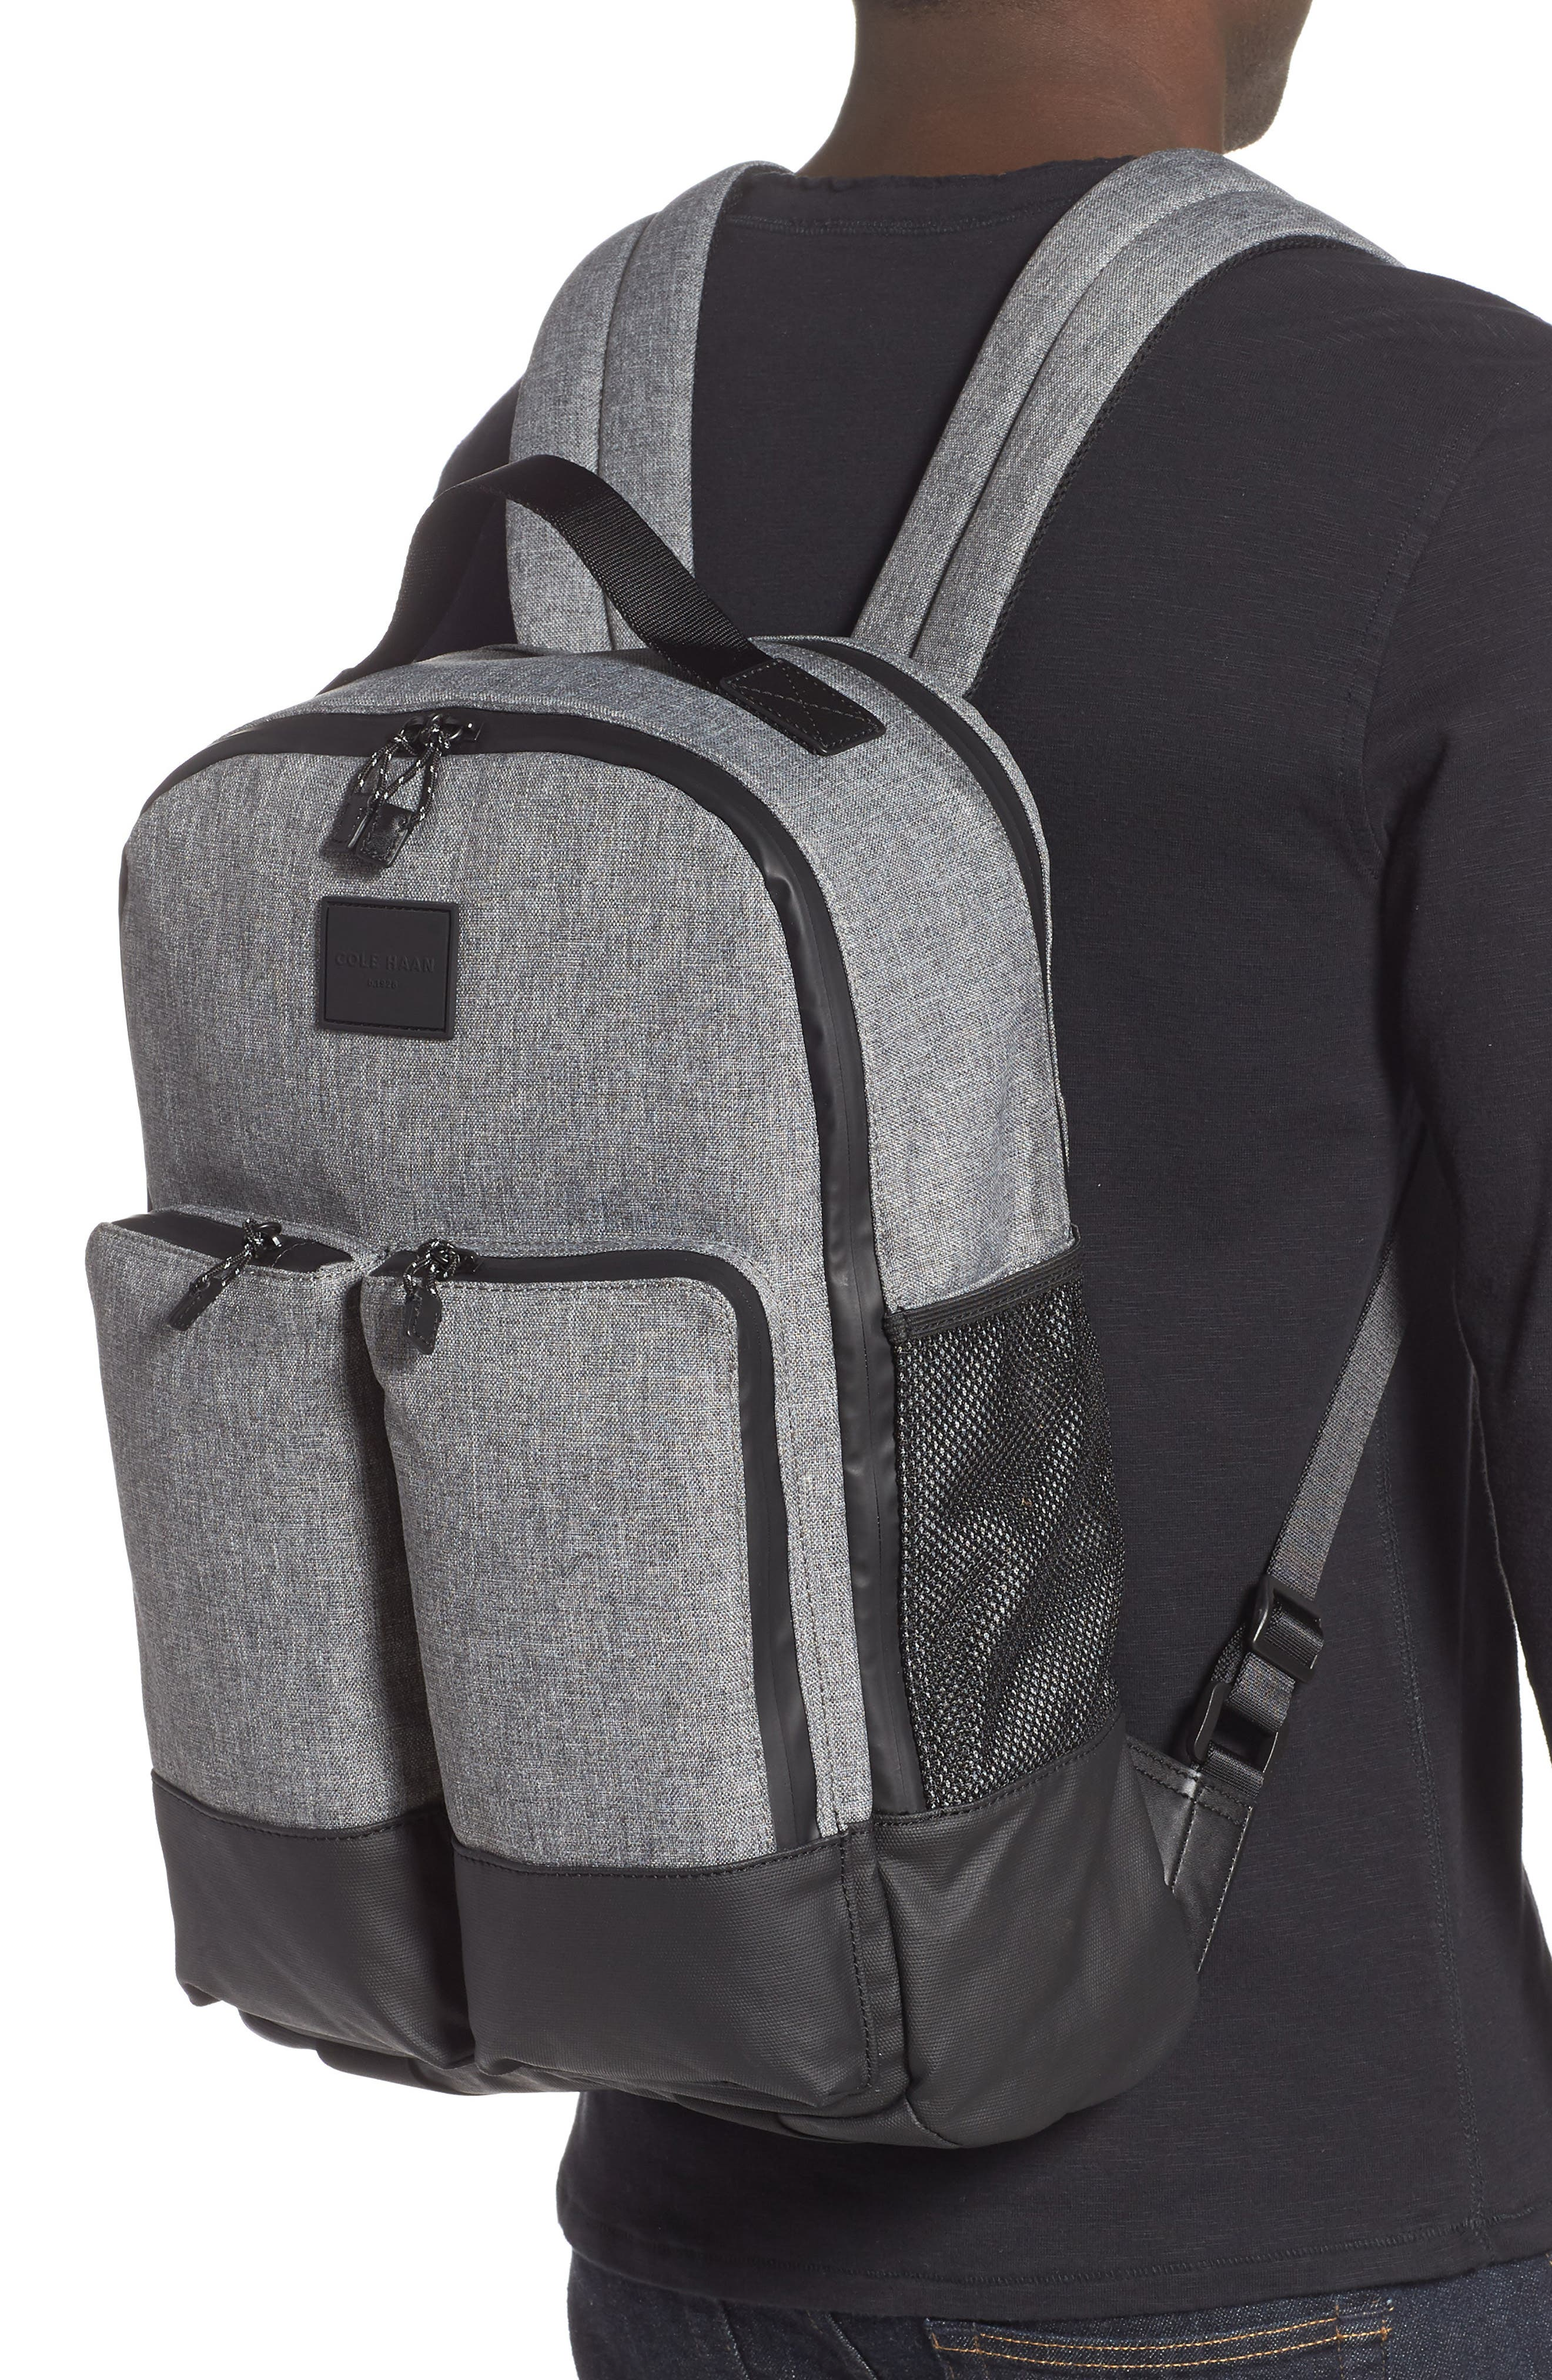 COLE HAAN, Sawyer Trail Backpack, Alternate thumbnail 2, color, HEATHERED GREY